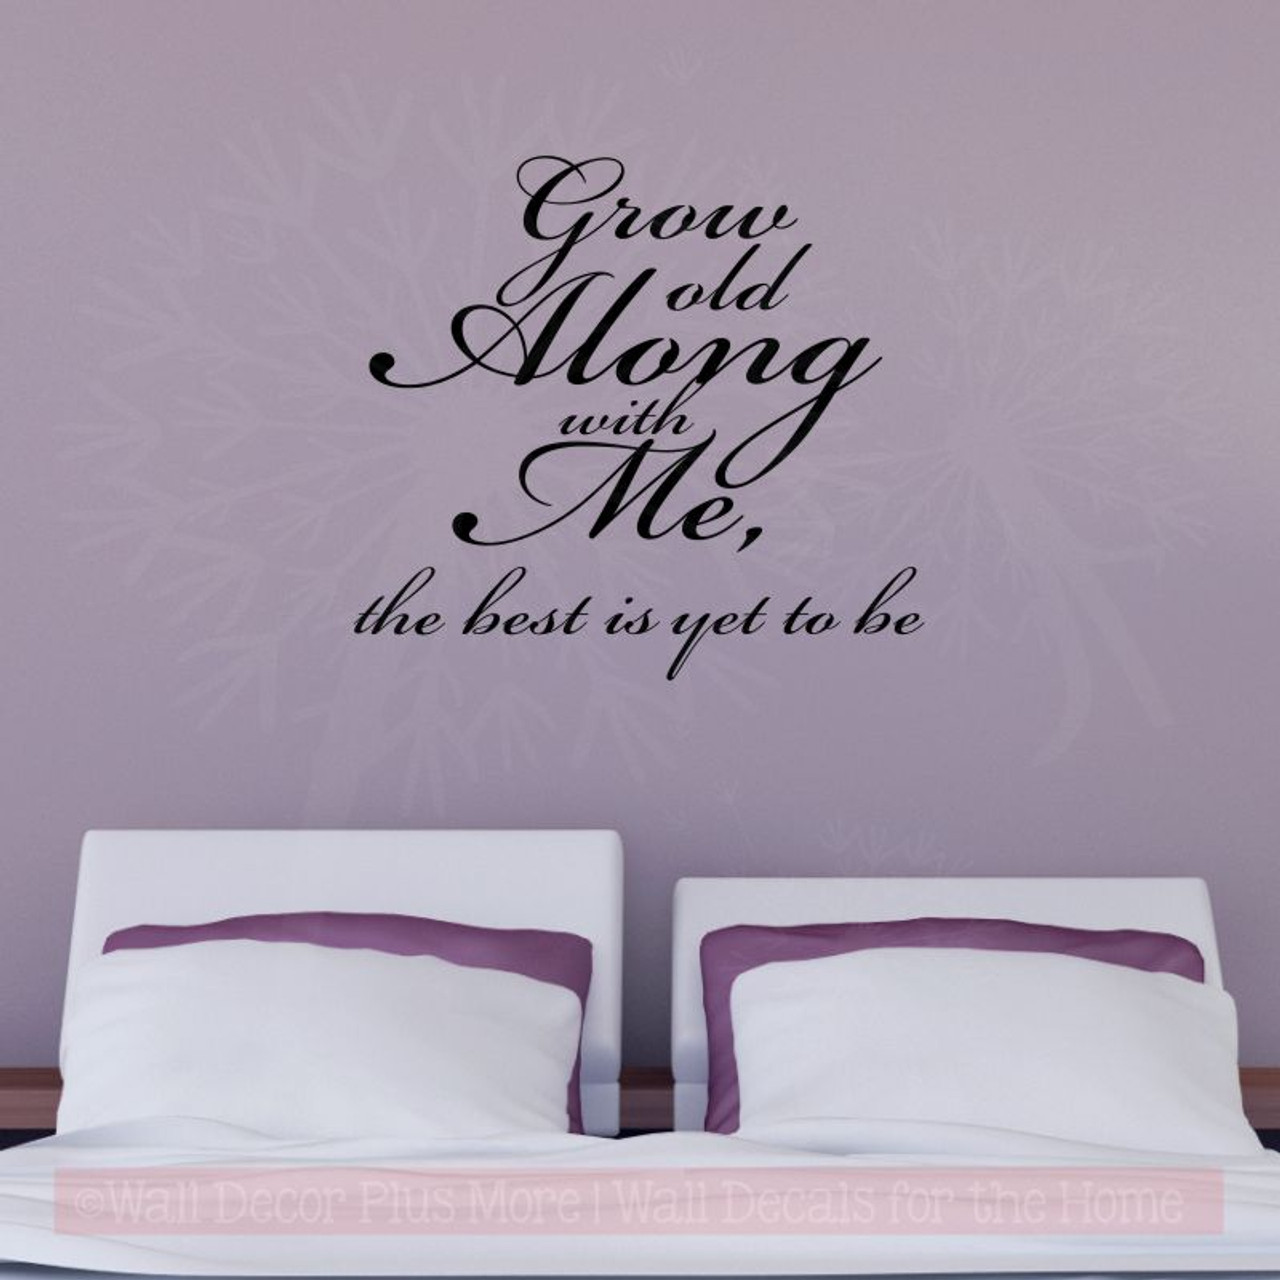 grow old along with me wall stickers decals popular bedroom wall words